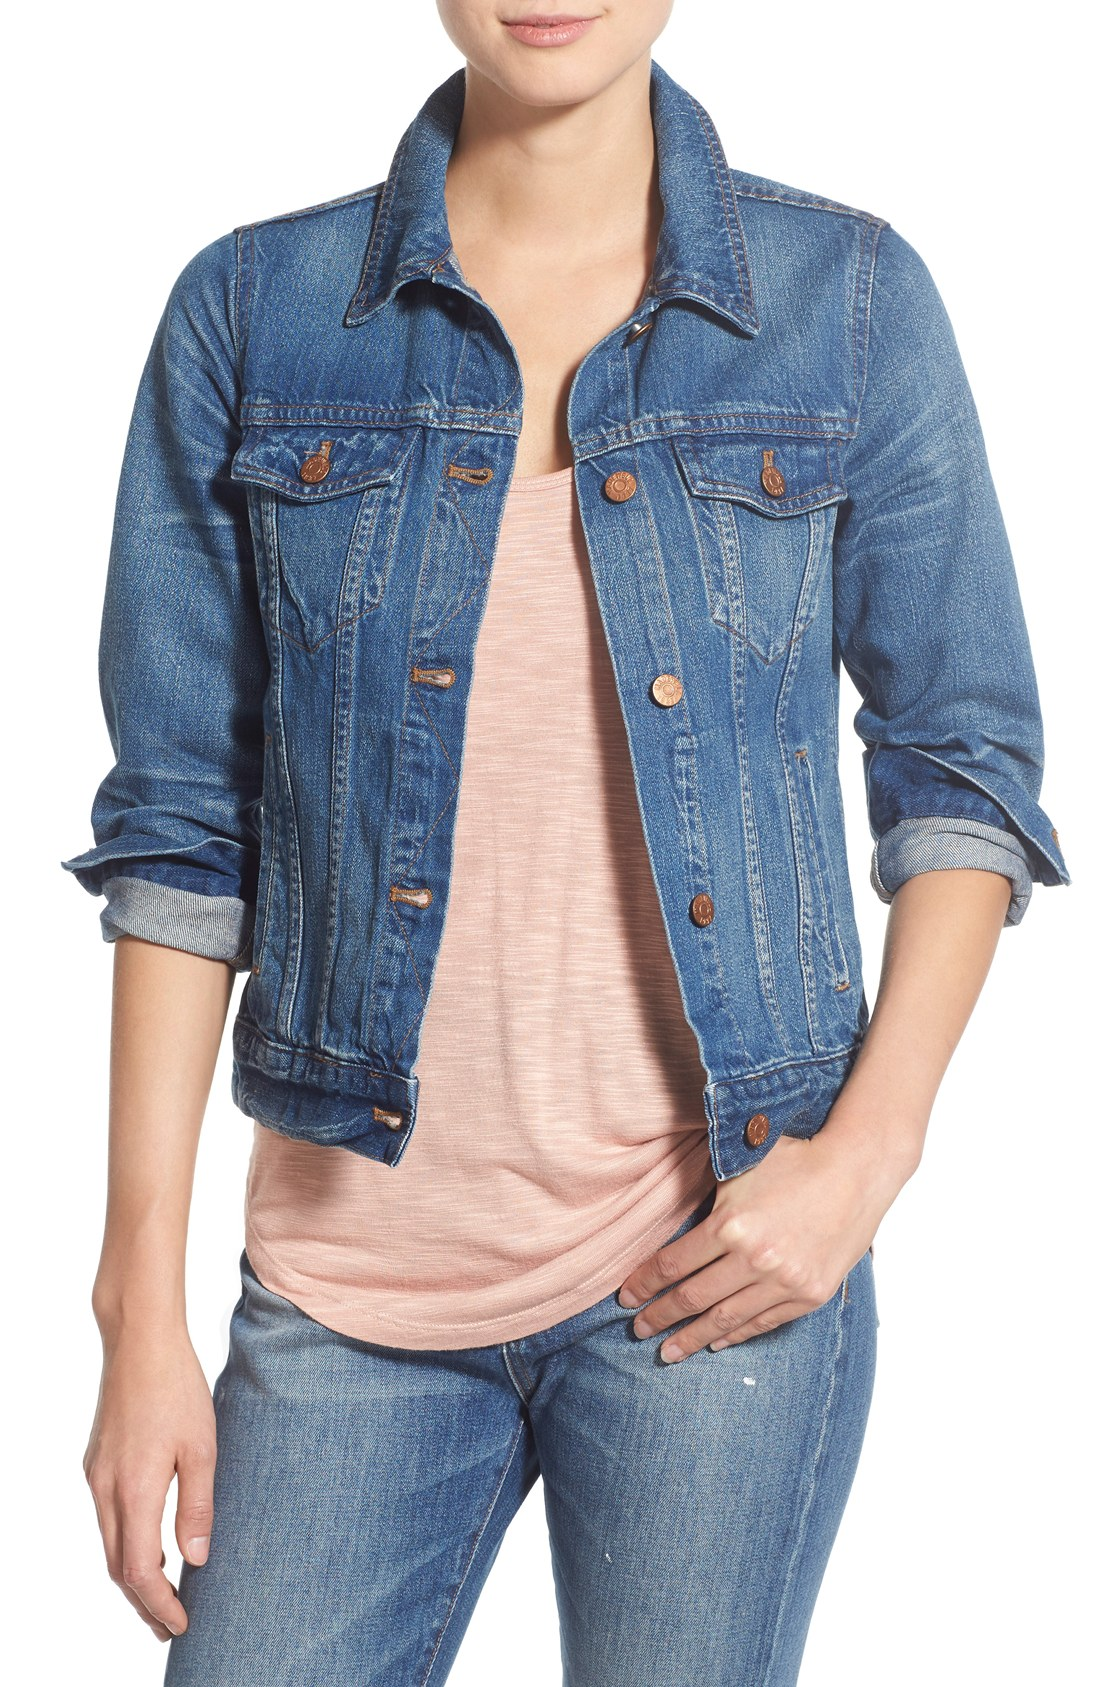 Womens Jean Jacket – Renovate and Innovate